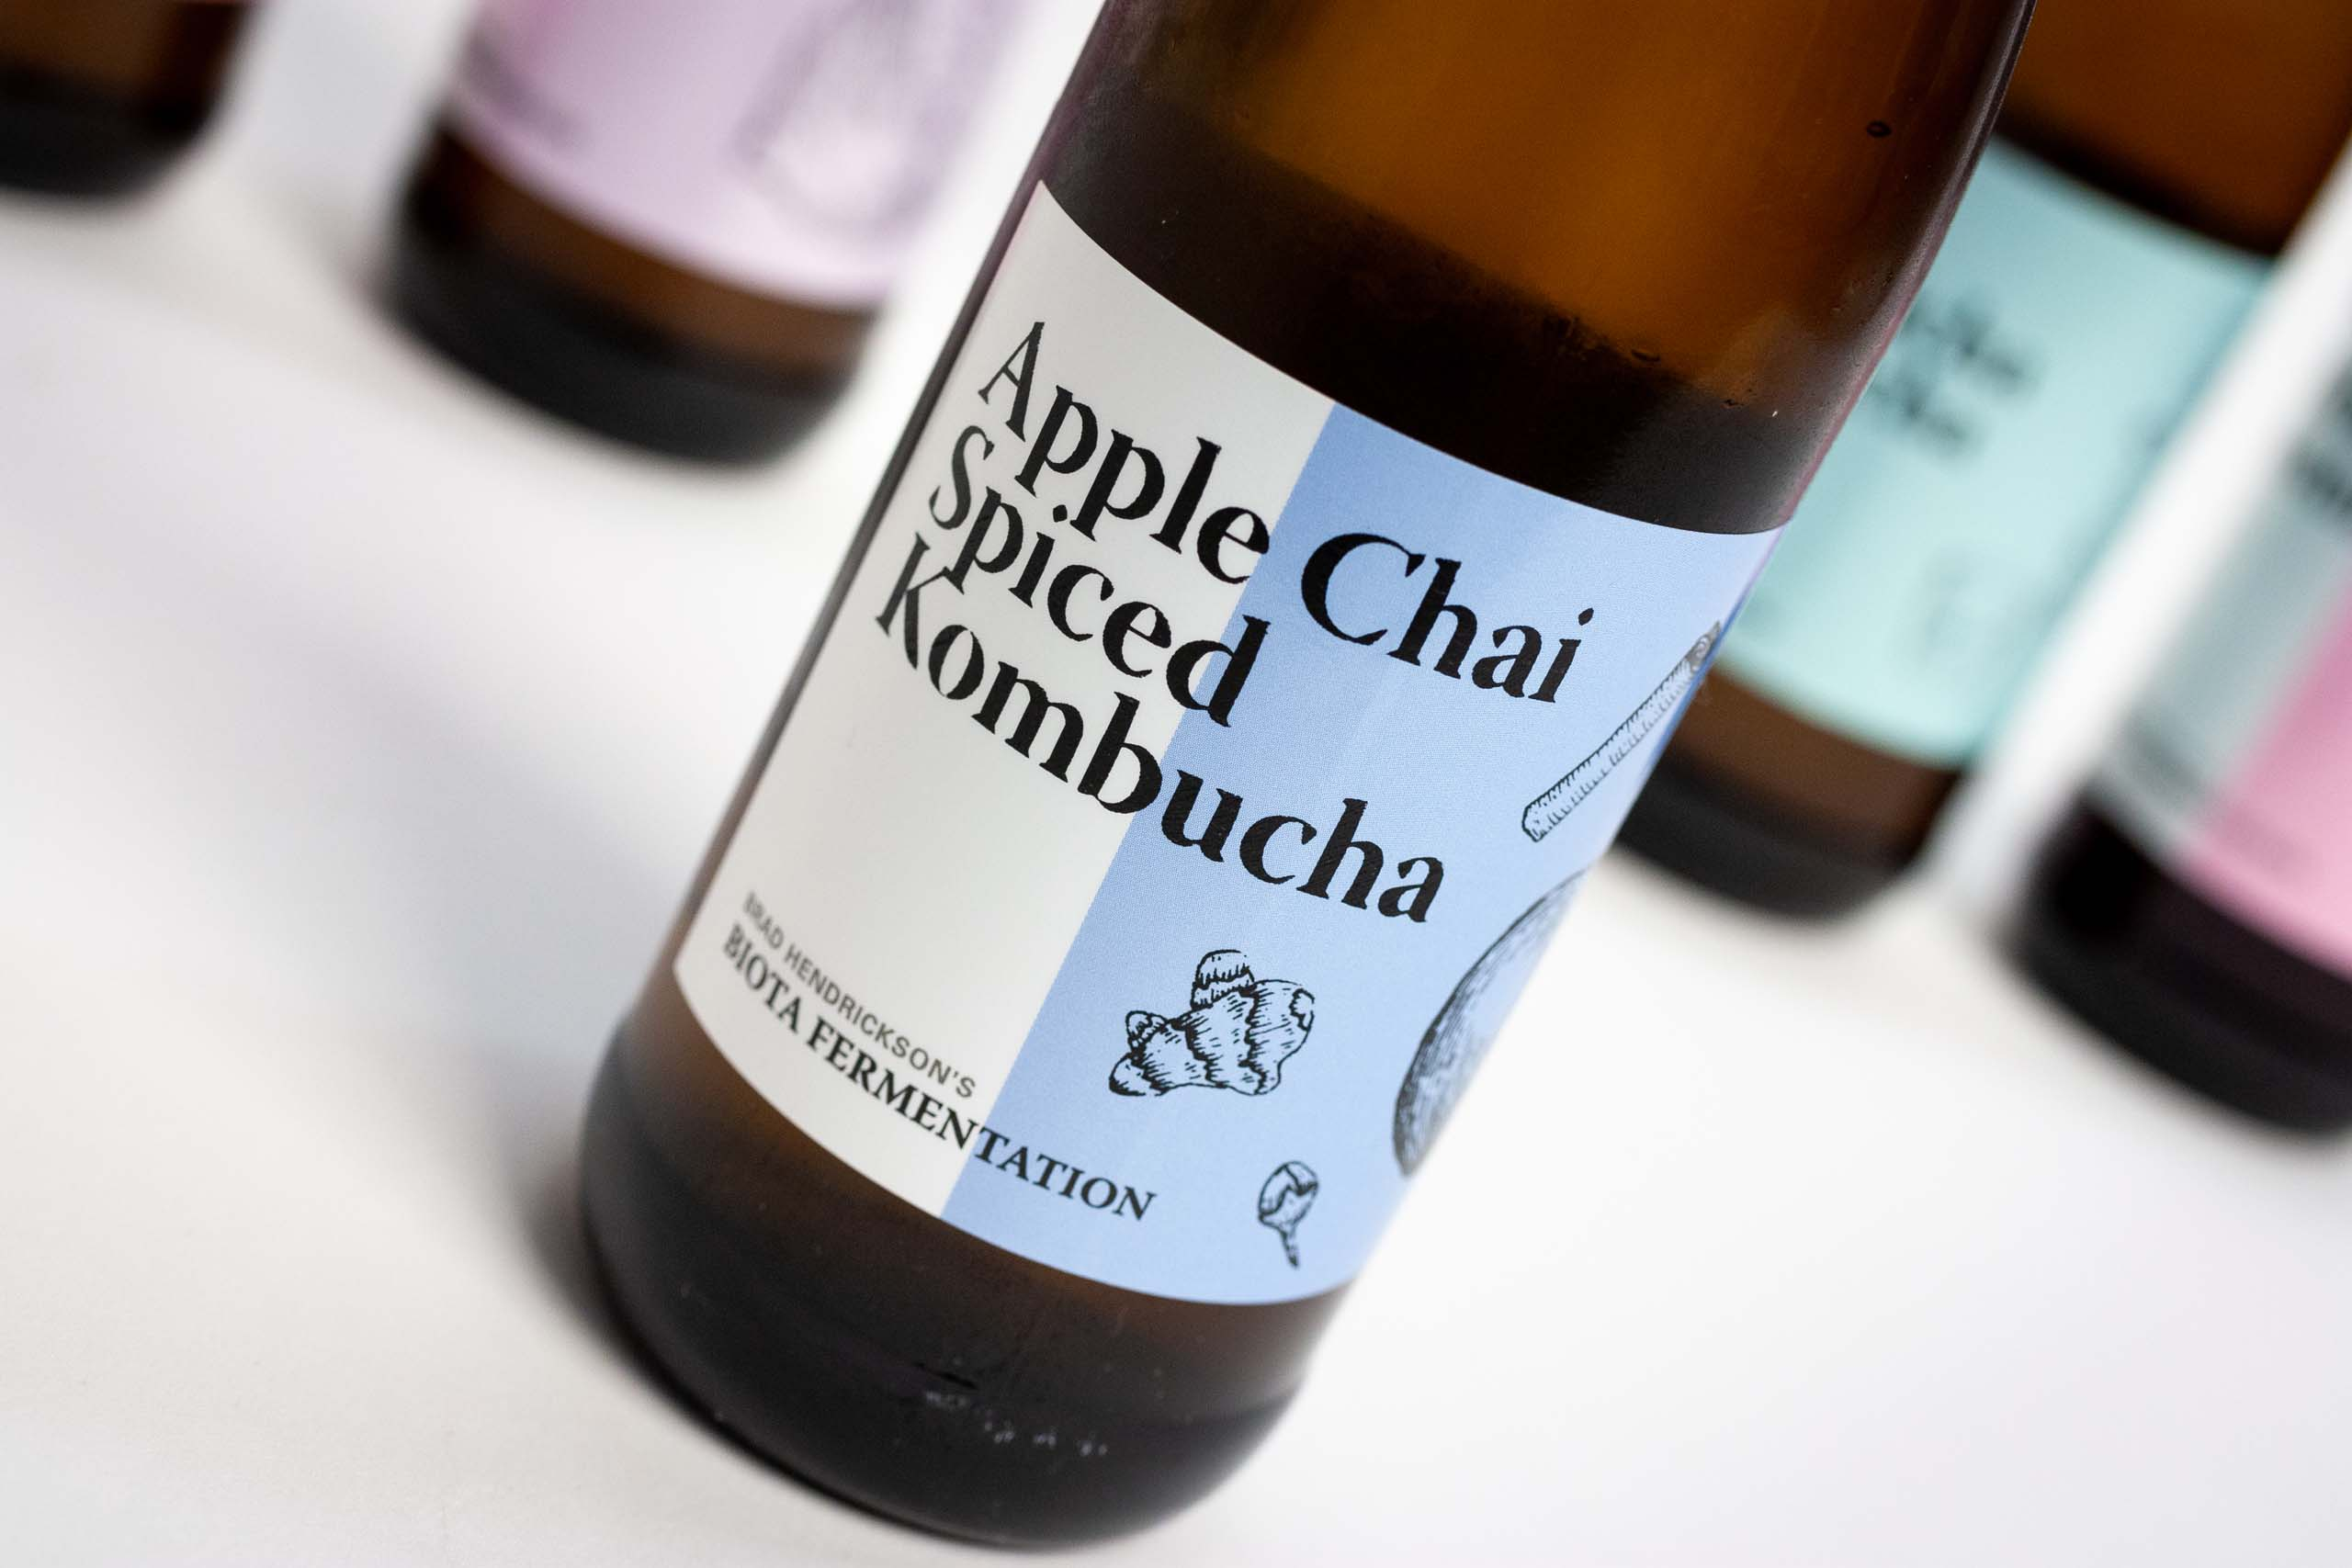 Apple Chain Spiced Kombucha Label up close — by Yagnyuk.